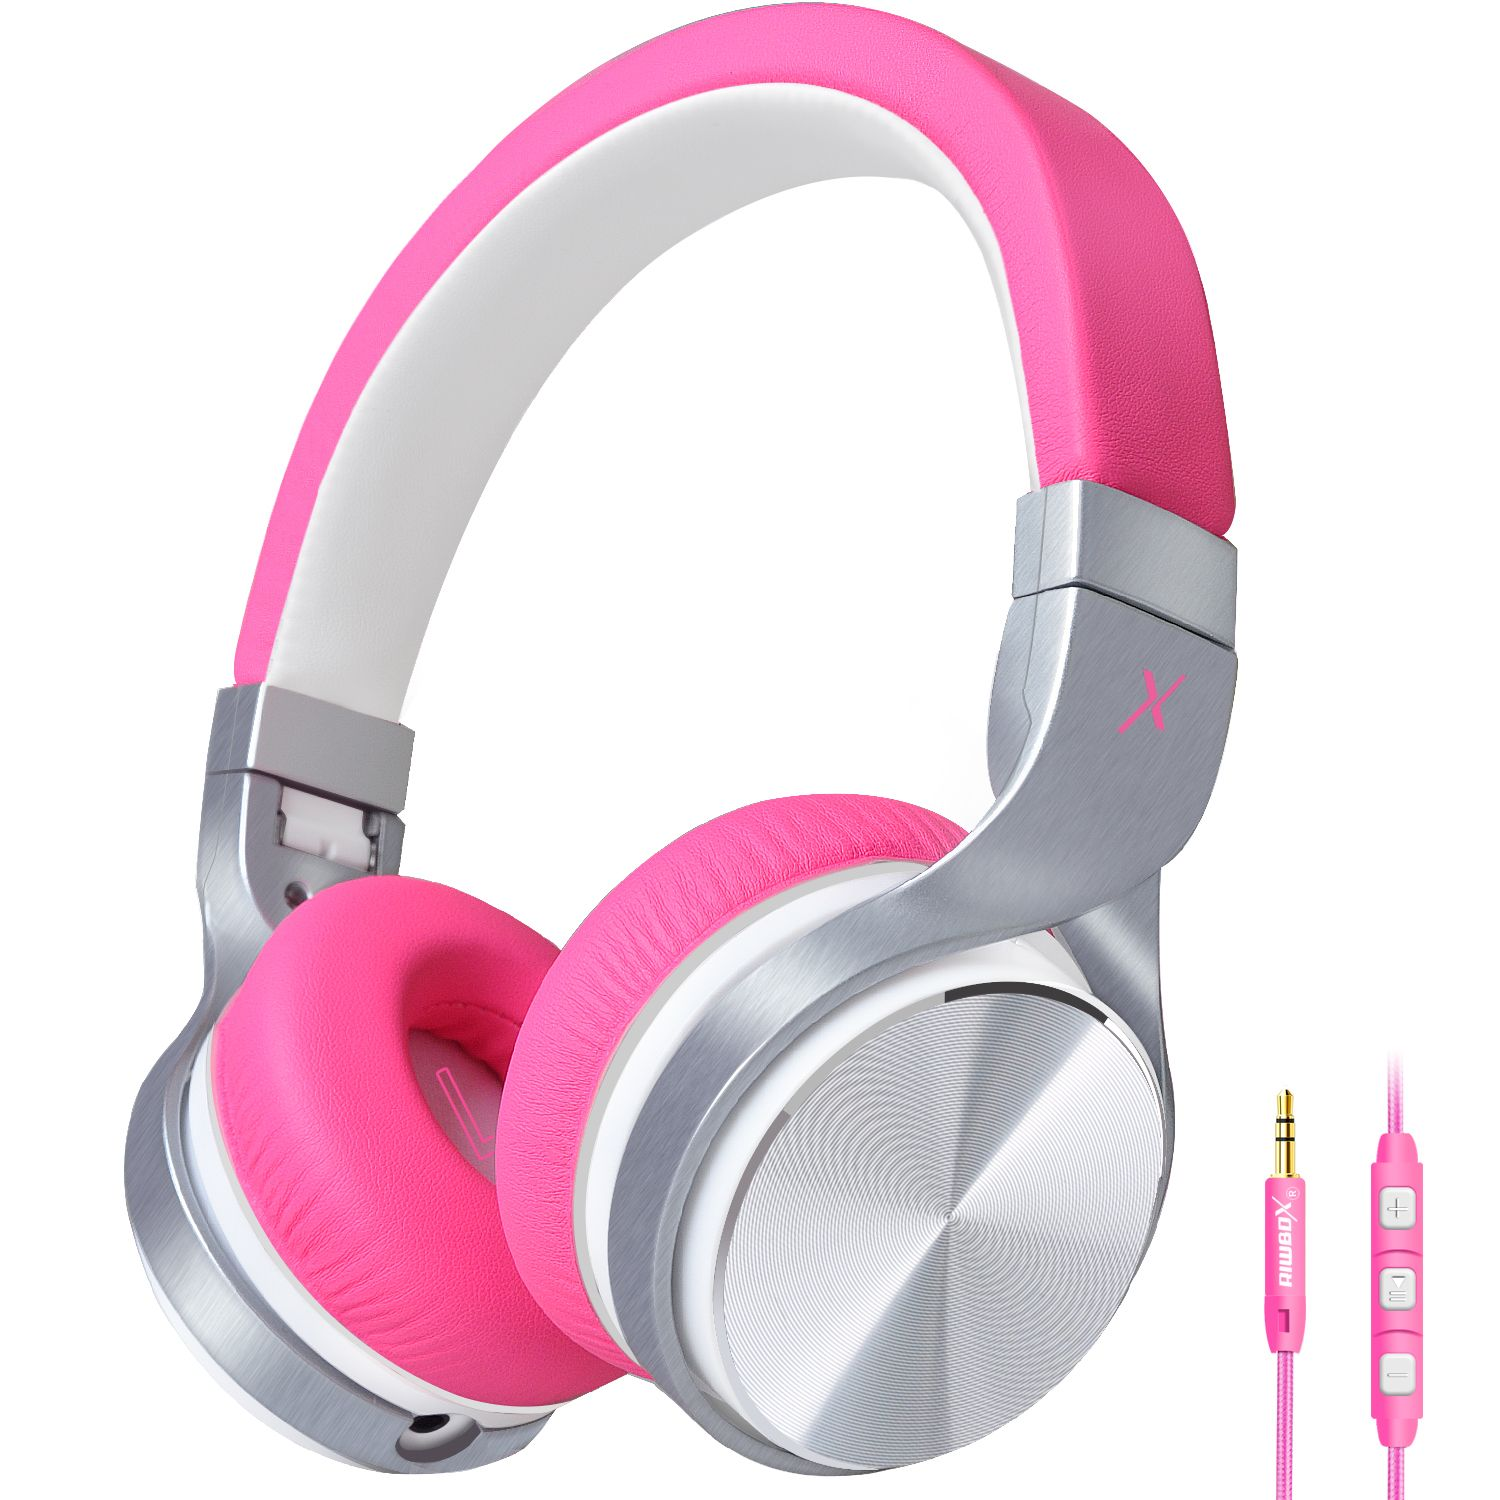 d9b76ecd1f0 Riwbox Over ear headphones for girls and kids pink headphones, girls  headphone best choice as gifts